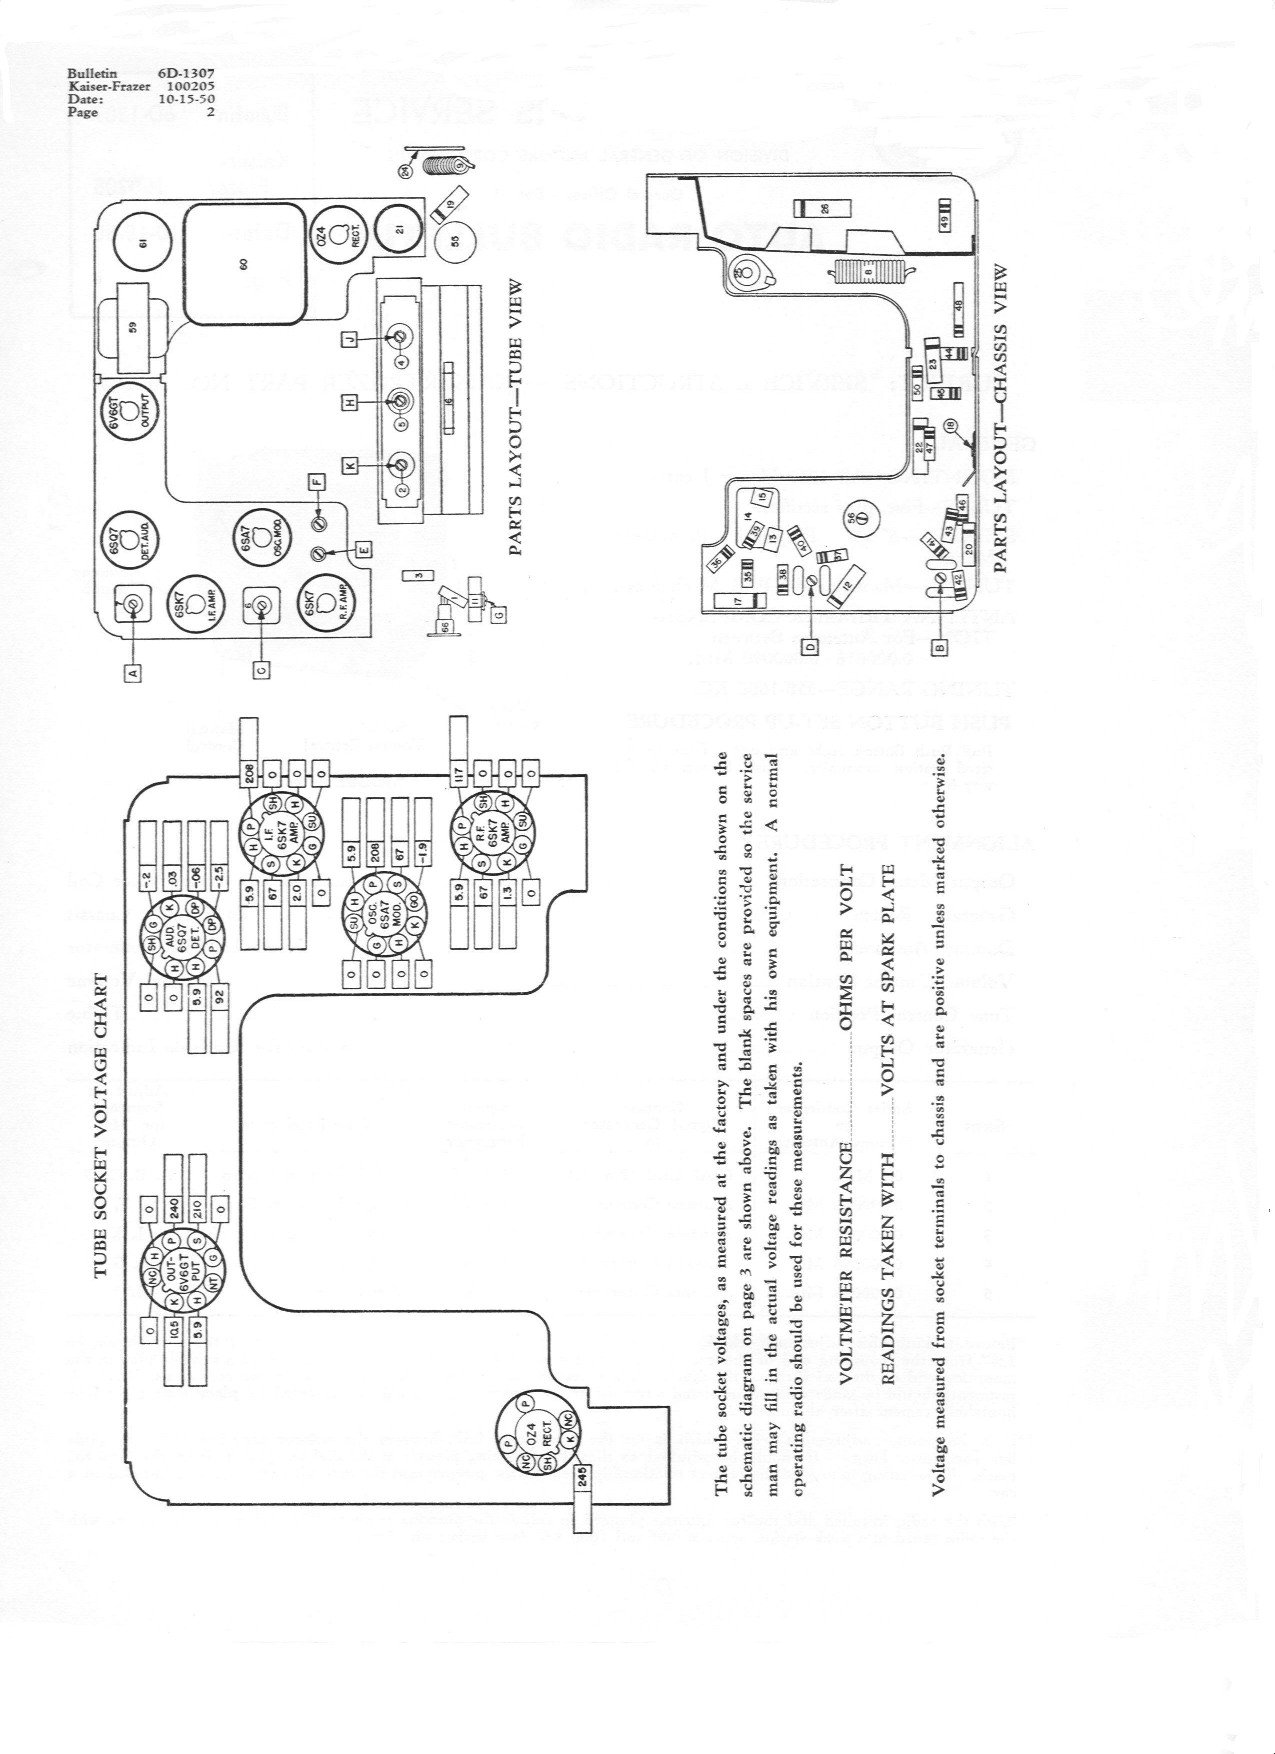 Henry J Wiring Diagram Schematics 1970 Dodge Coronet Diagrams Oldsmobile 88 Restoration Car History